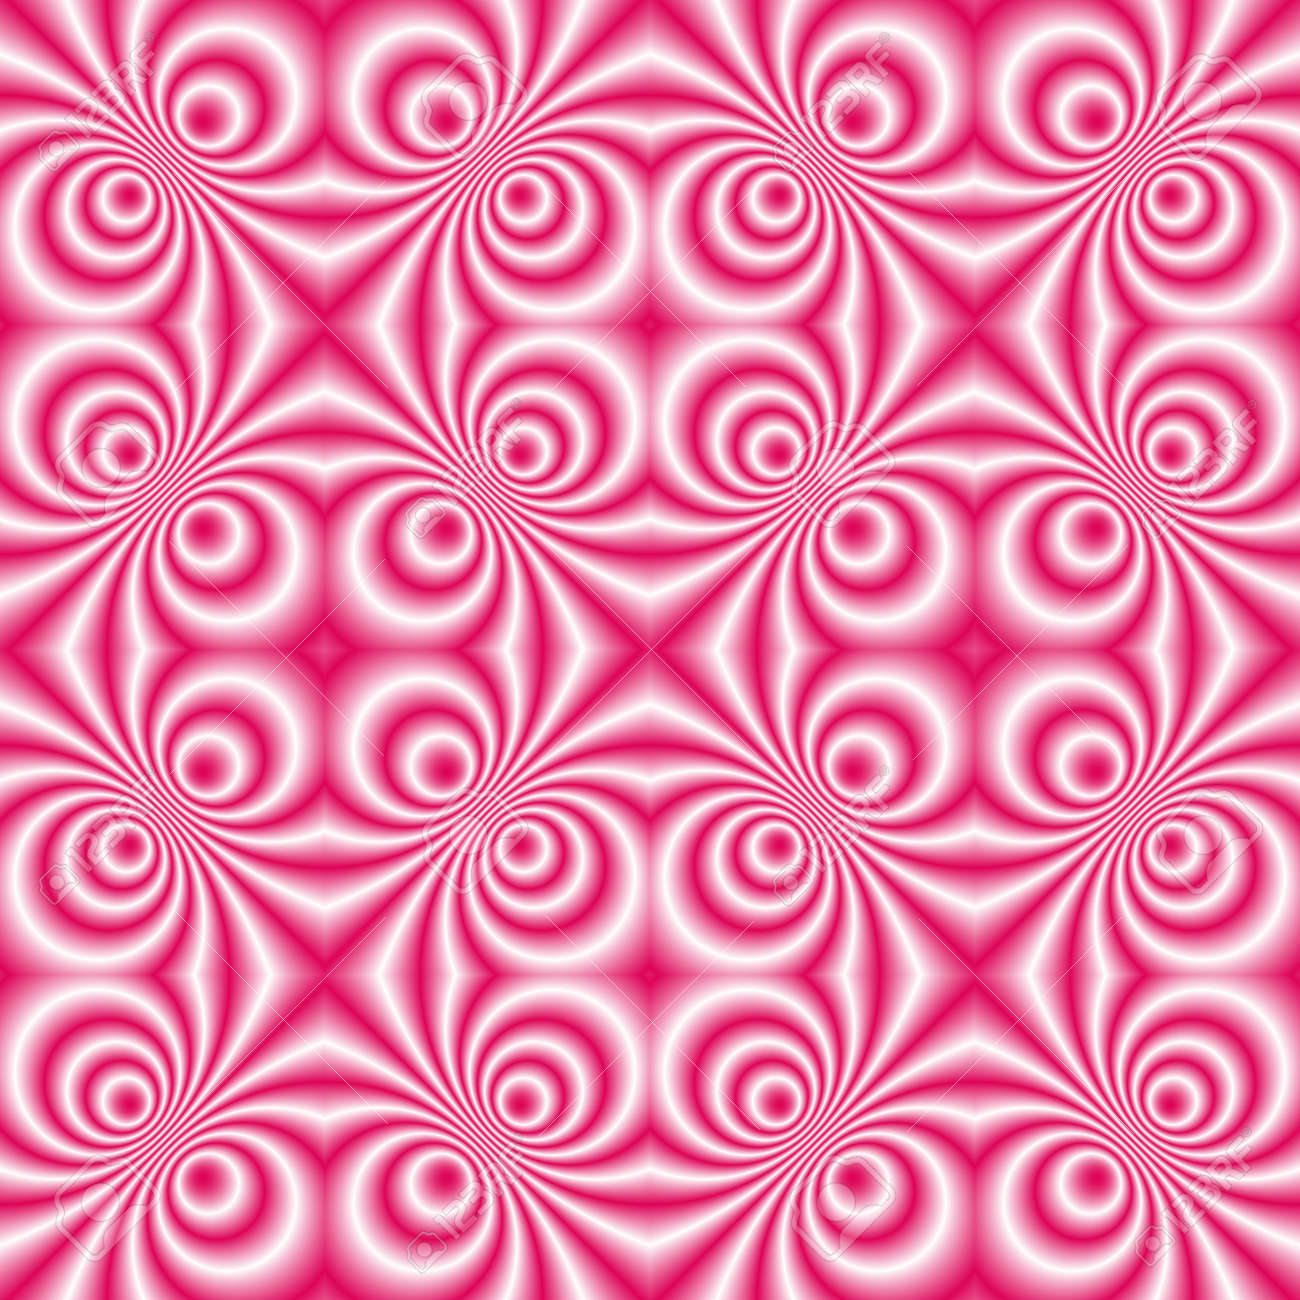 seamless tillable pink retro background with swirls, disco style Stock Photo - 2456285